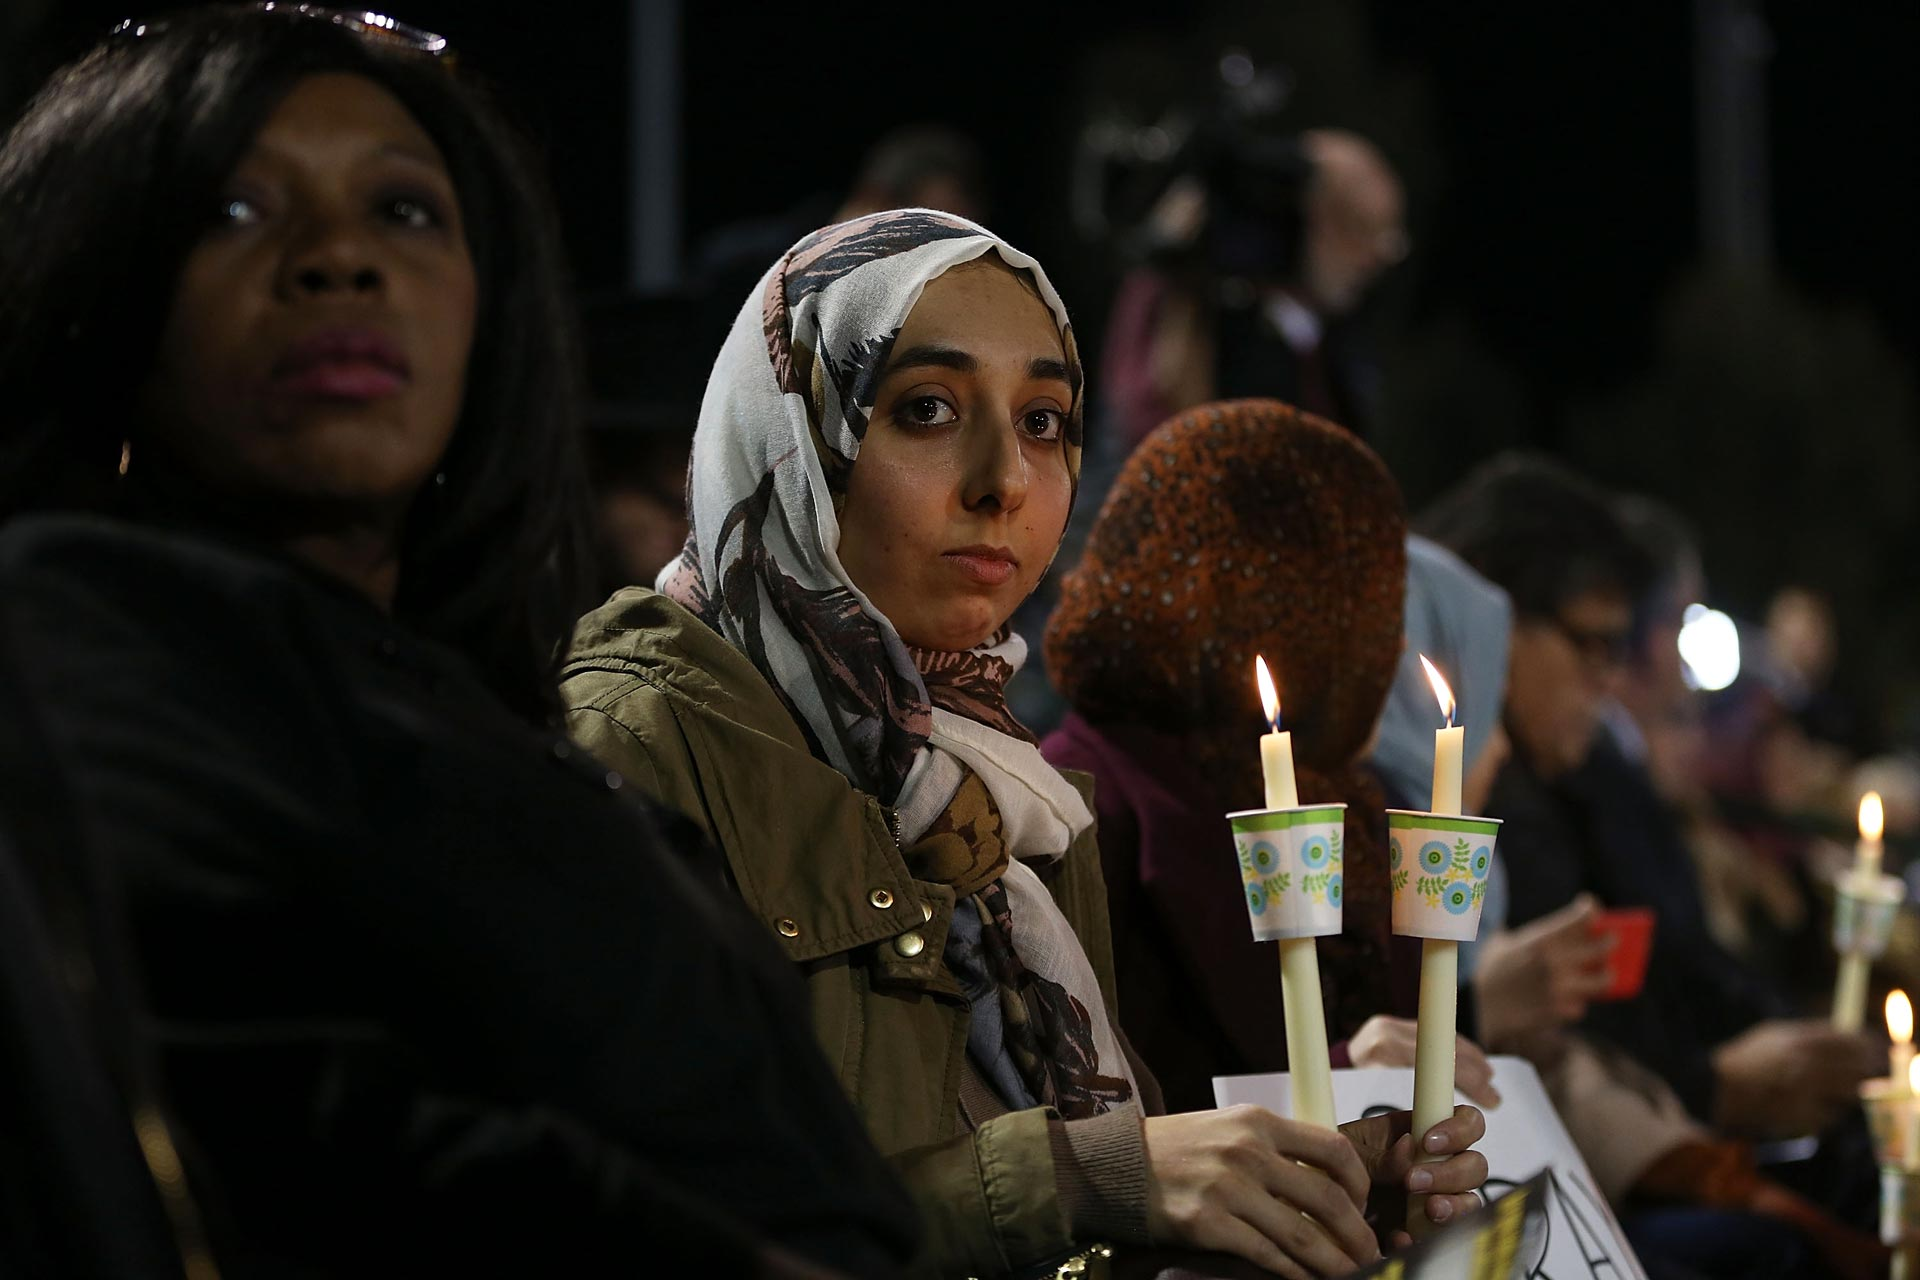 People hold candles as they attend a vigil at the San Manuel Stadium to remember those injured and killed during the shooting at the Inland Regional Center on Dec. 3, 2015 in San Bernardino.